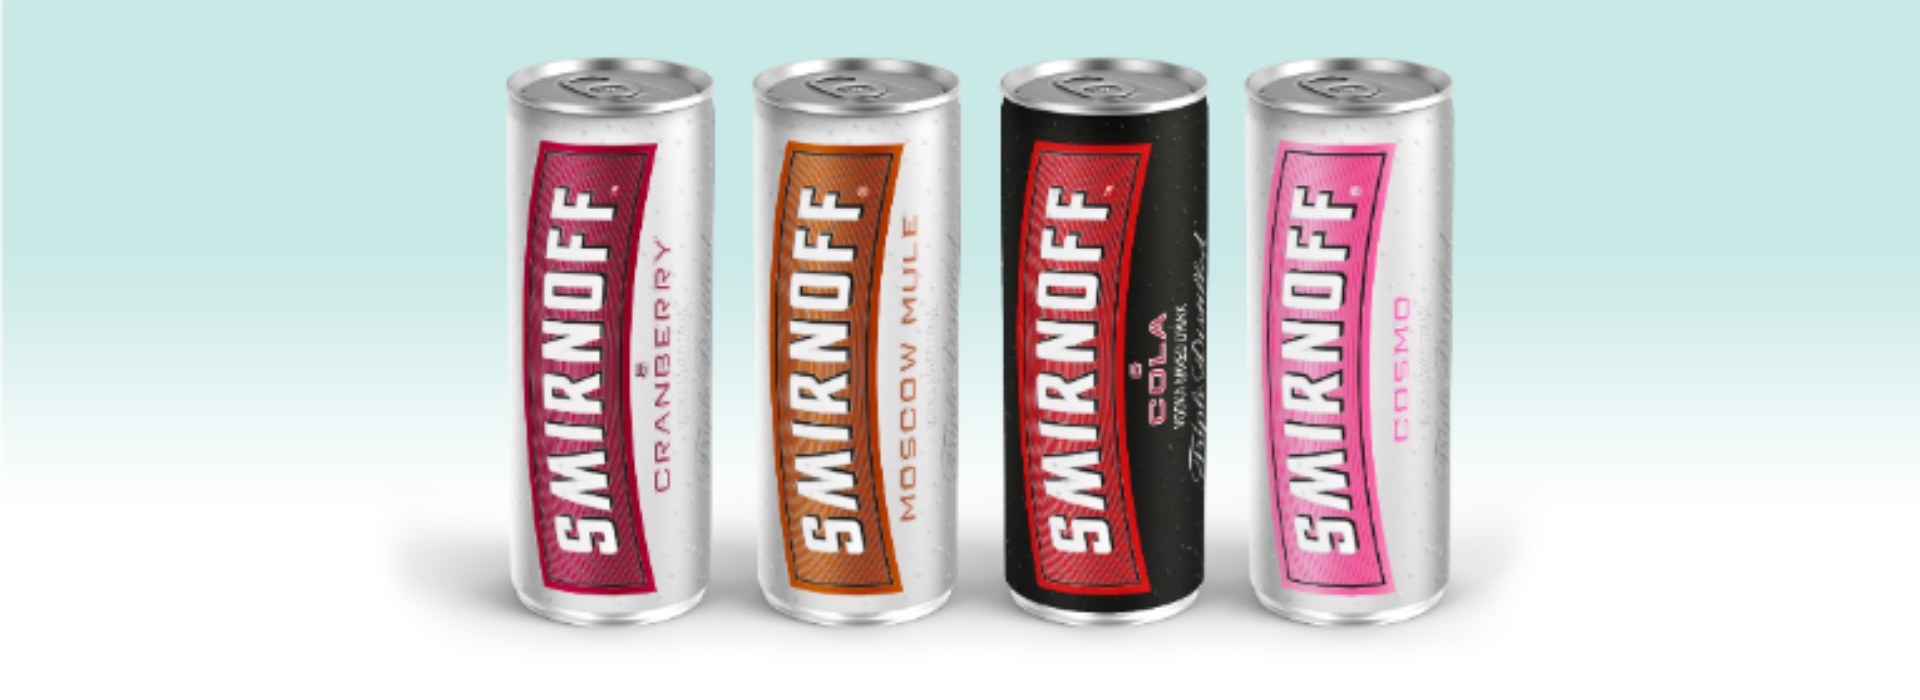 5 steps to brand consistency on packaging